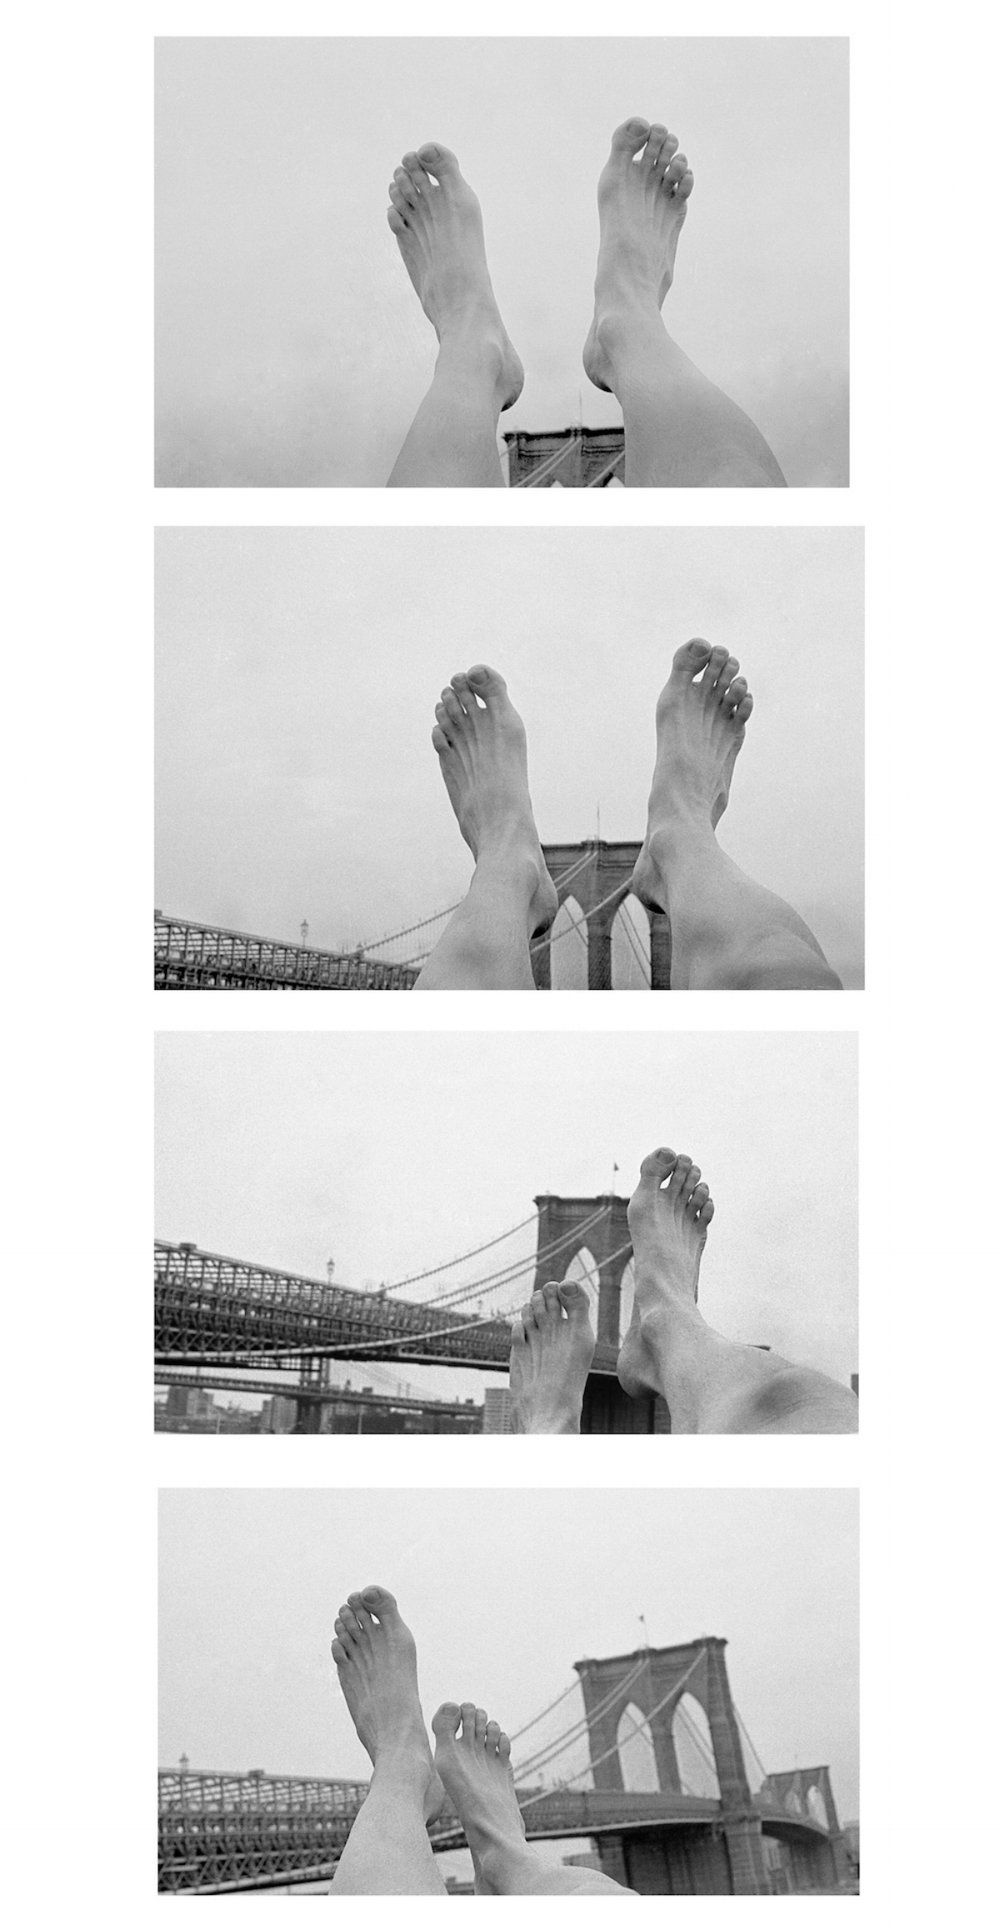 Brooklyn Bridge feet